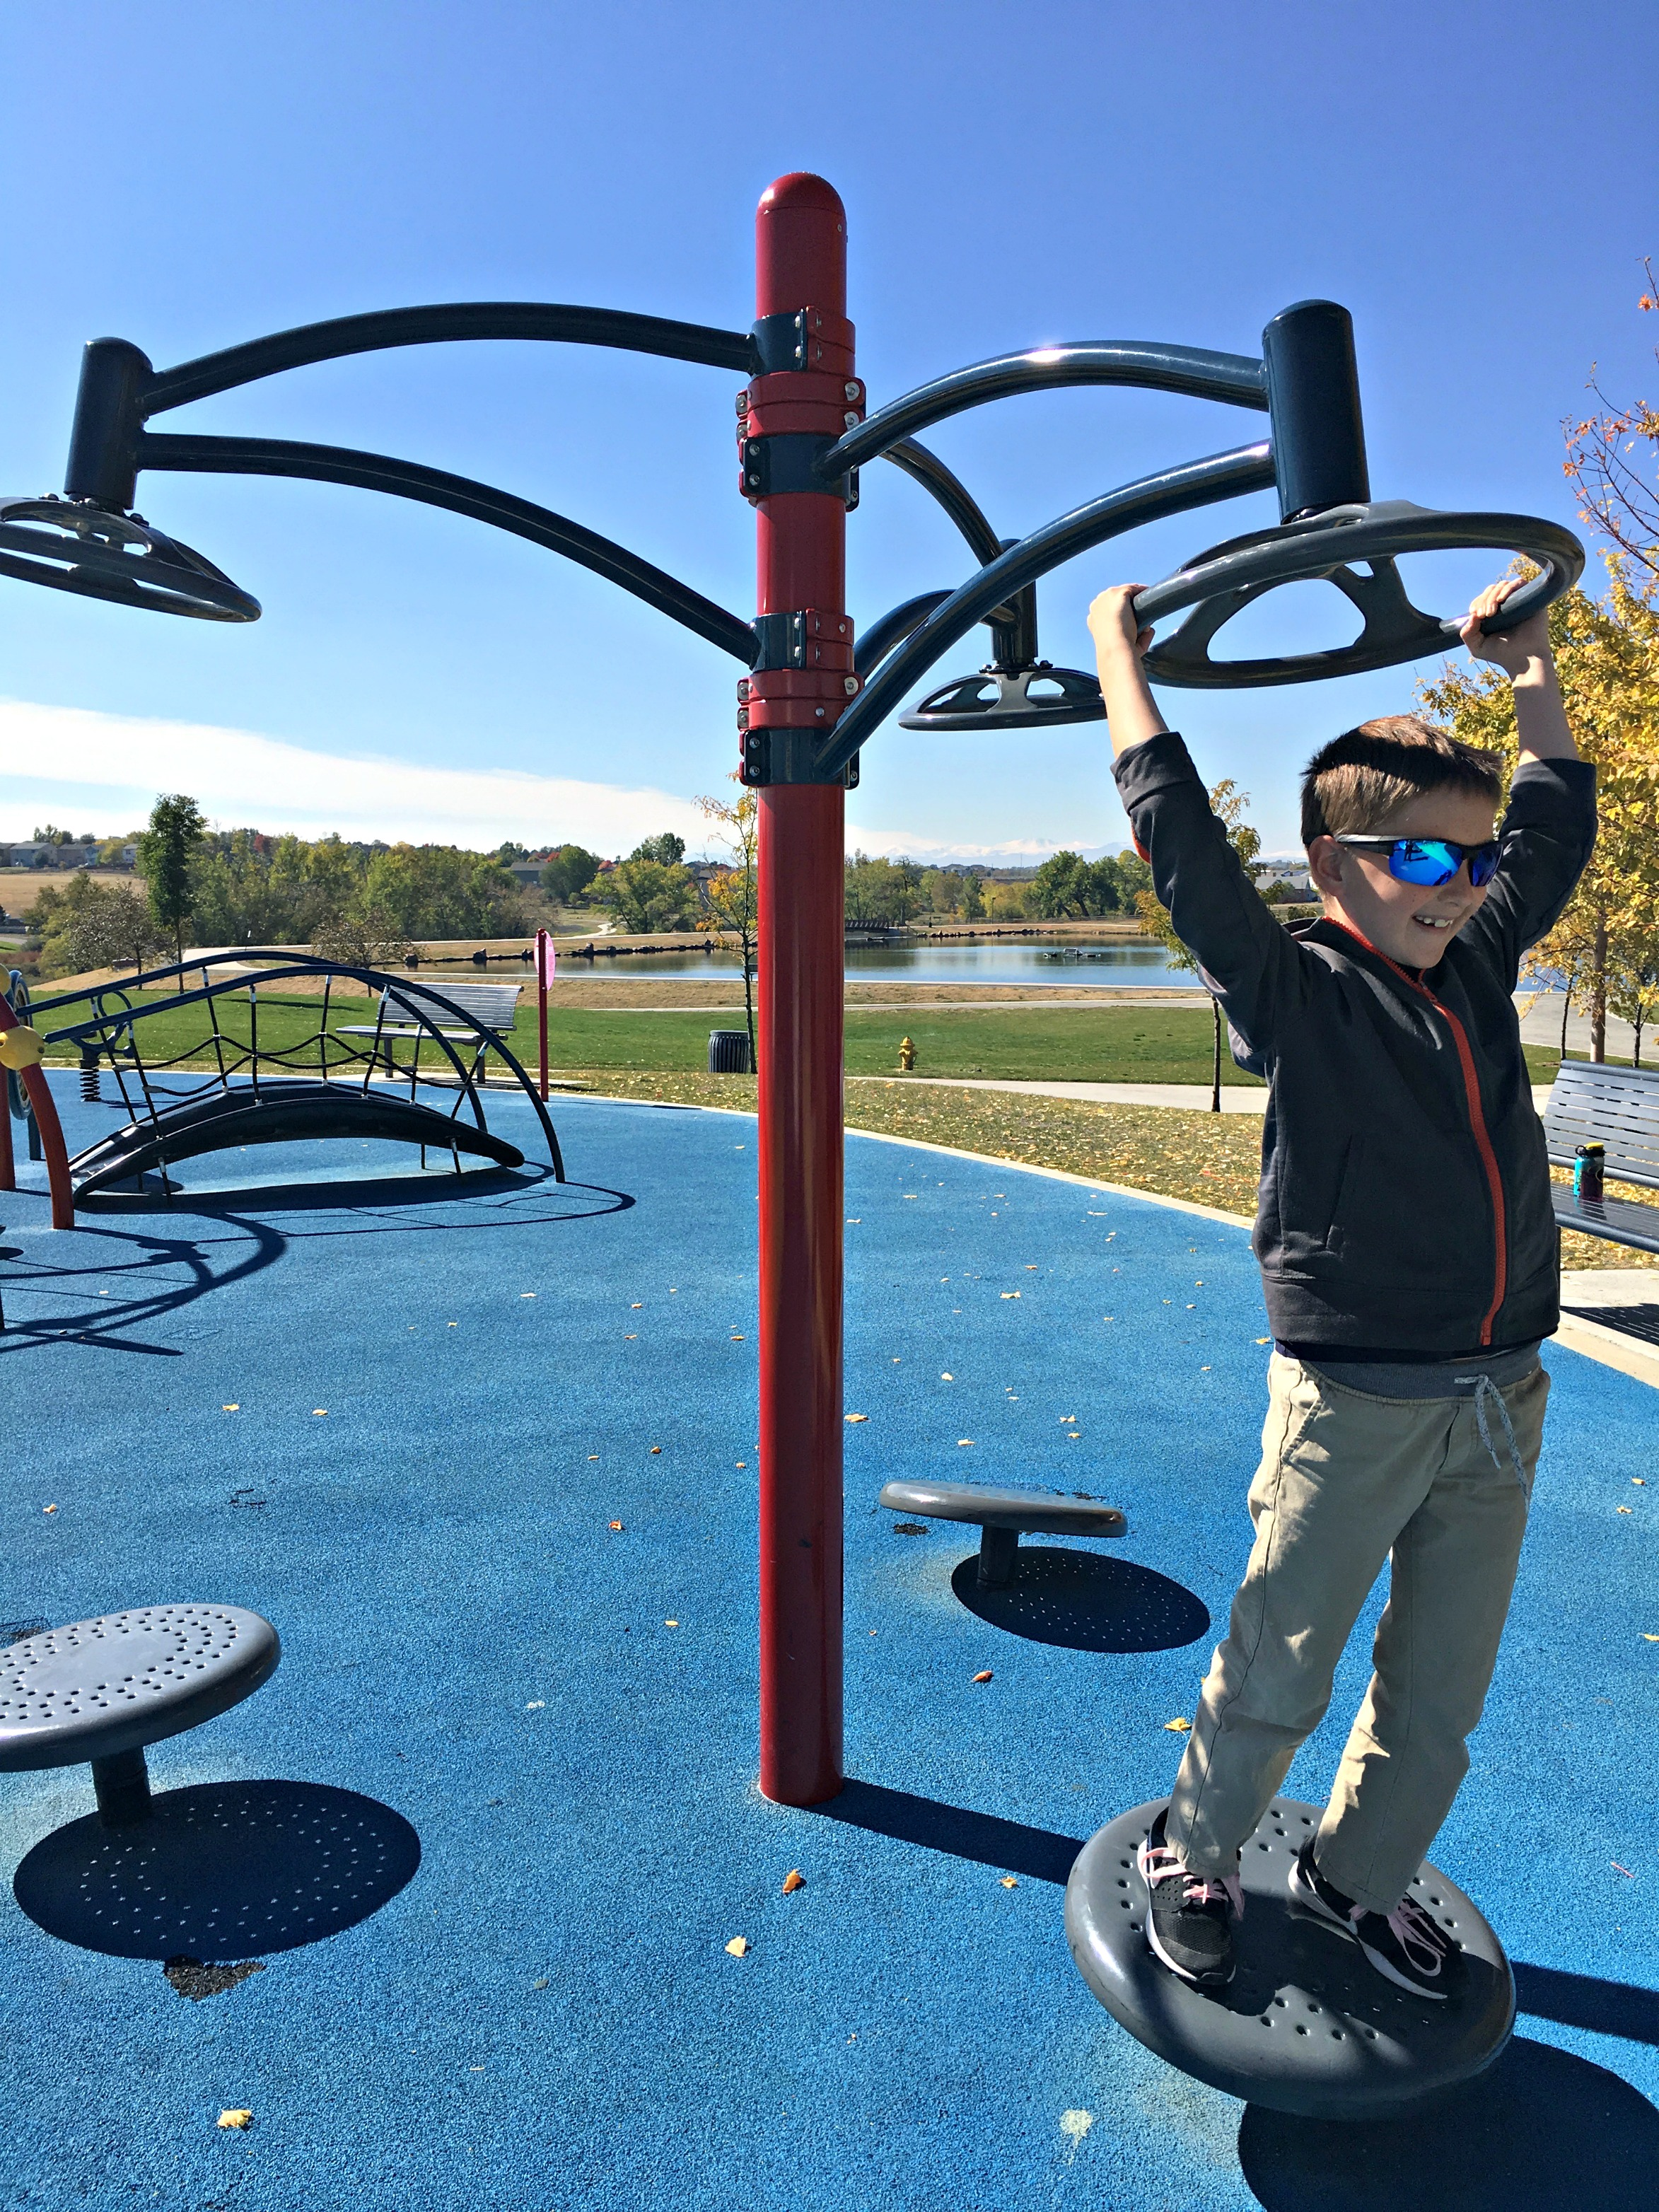 Find an Inclusive Playground Near You